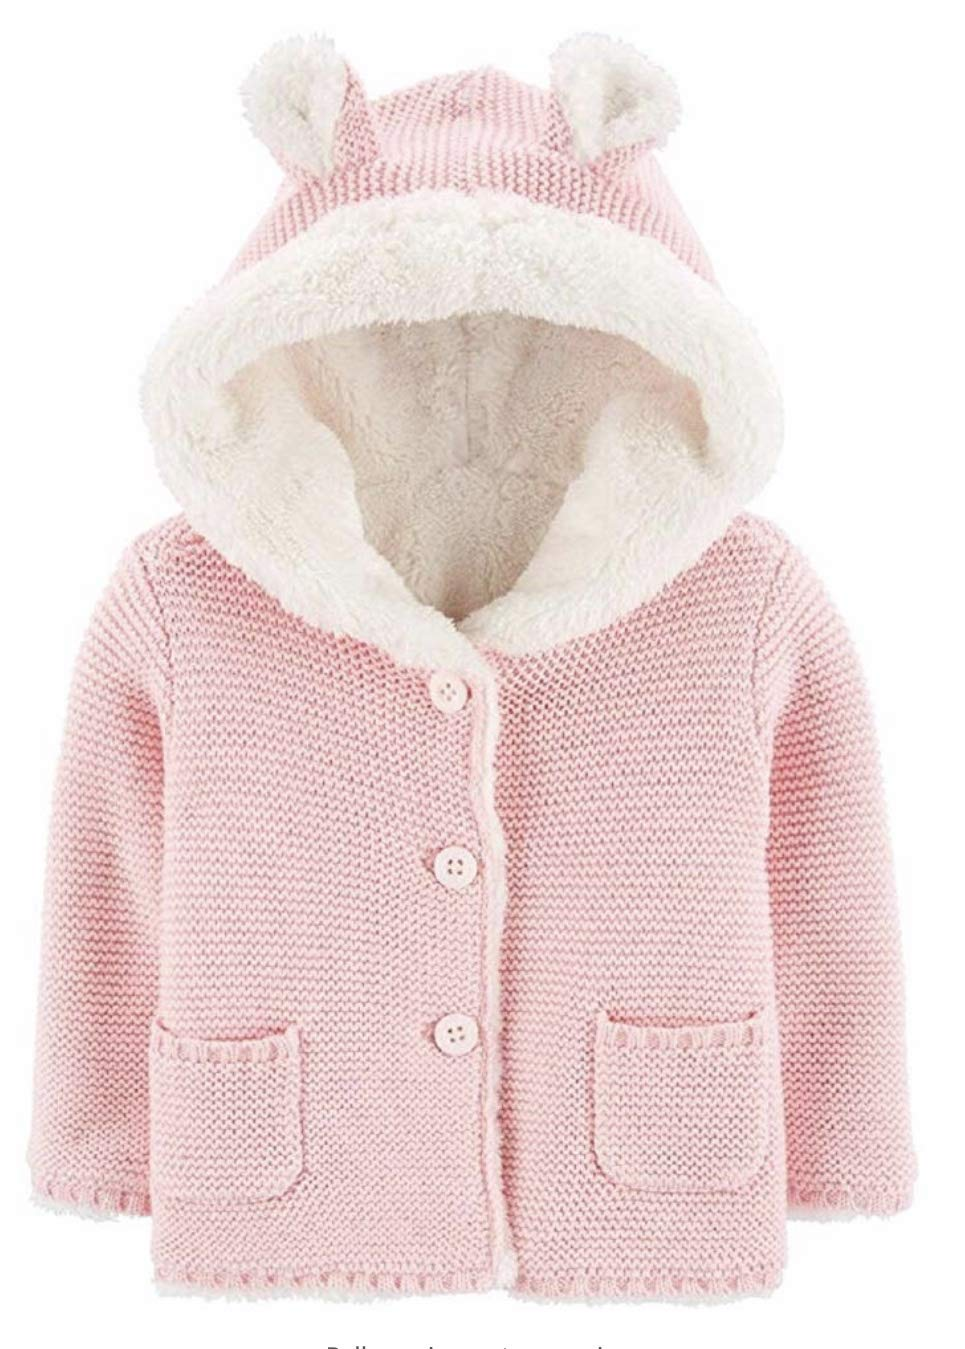 Carter's Baby Hooded Cardigan with Sherpa Lining with 3D Ear Size 12 Months Pink